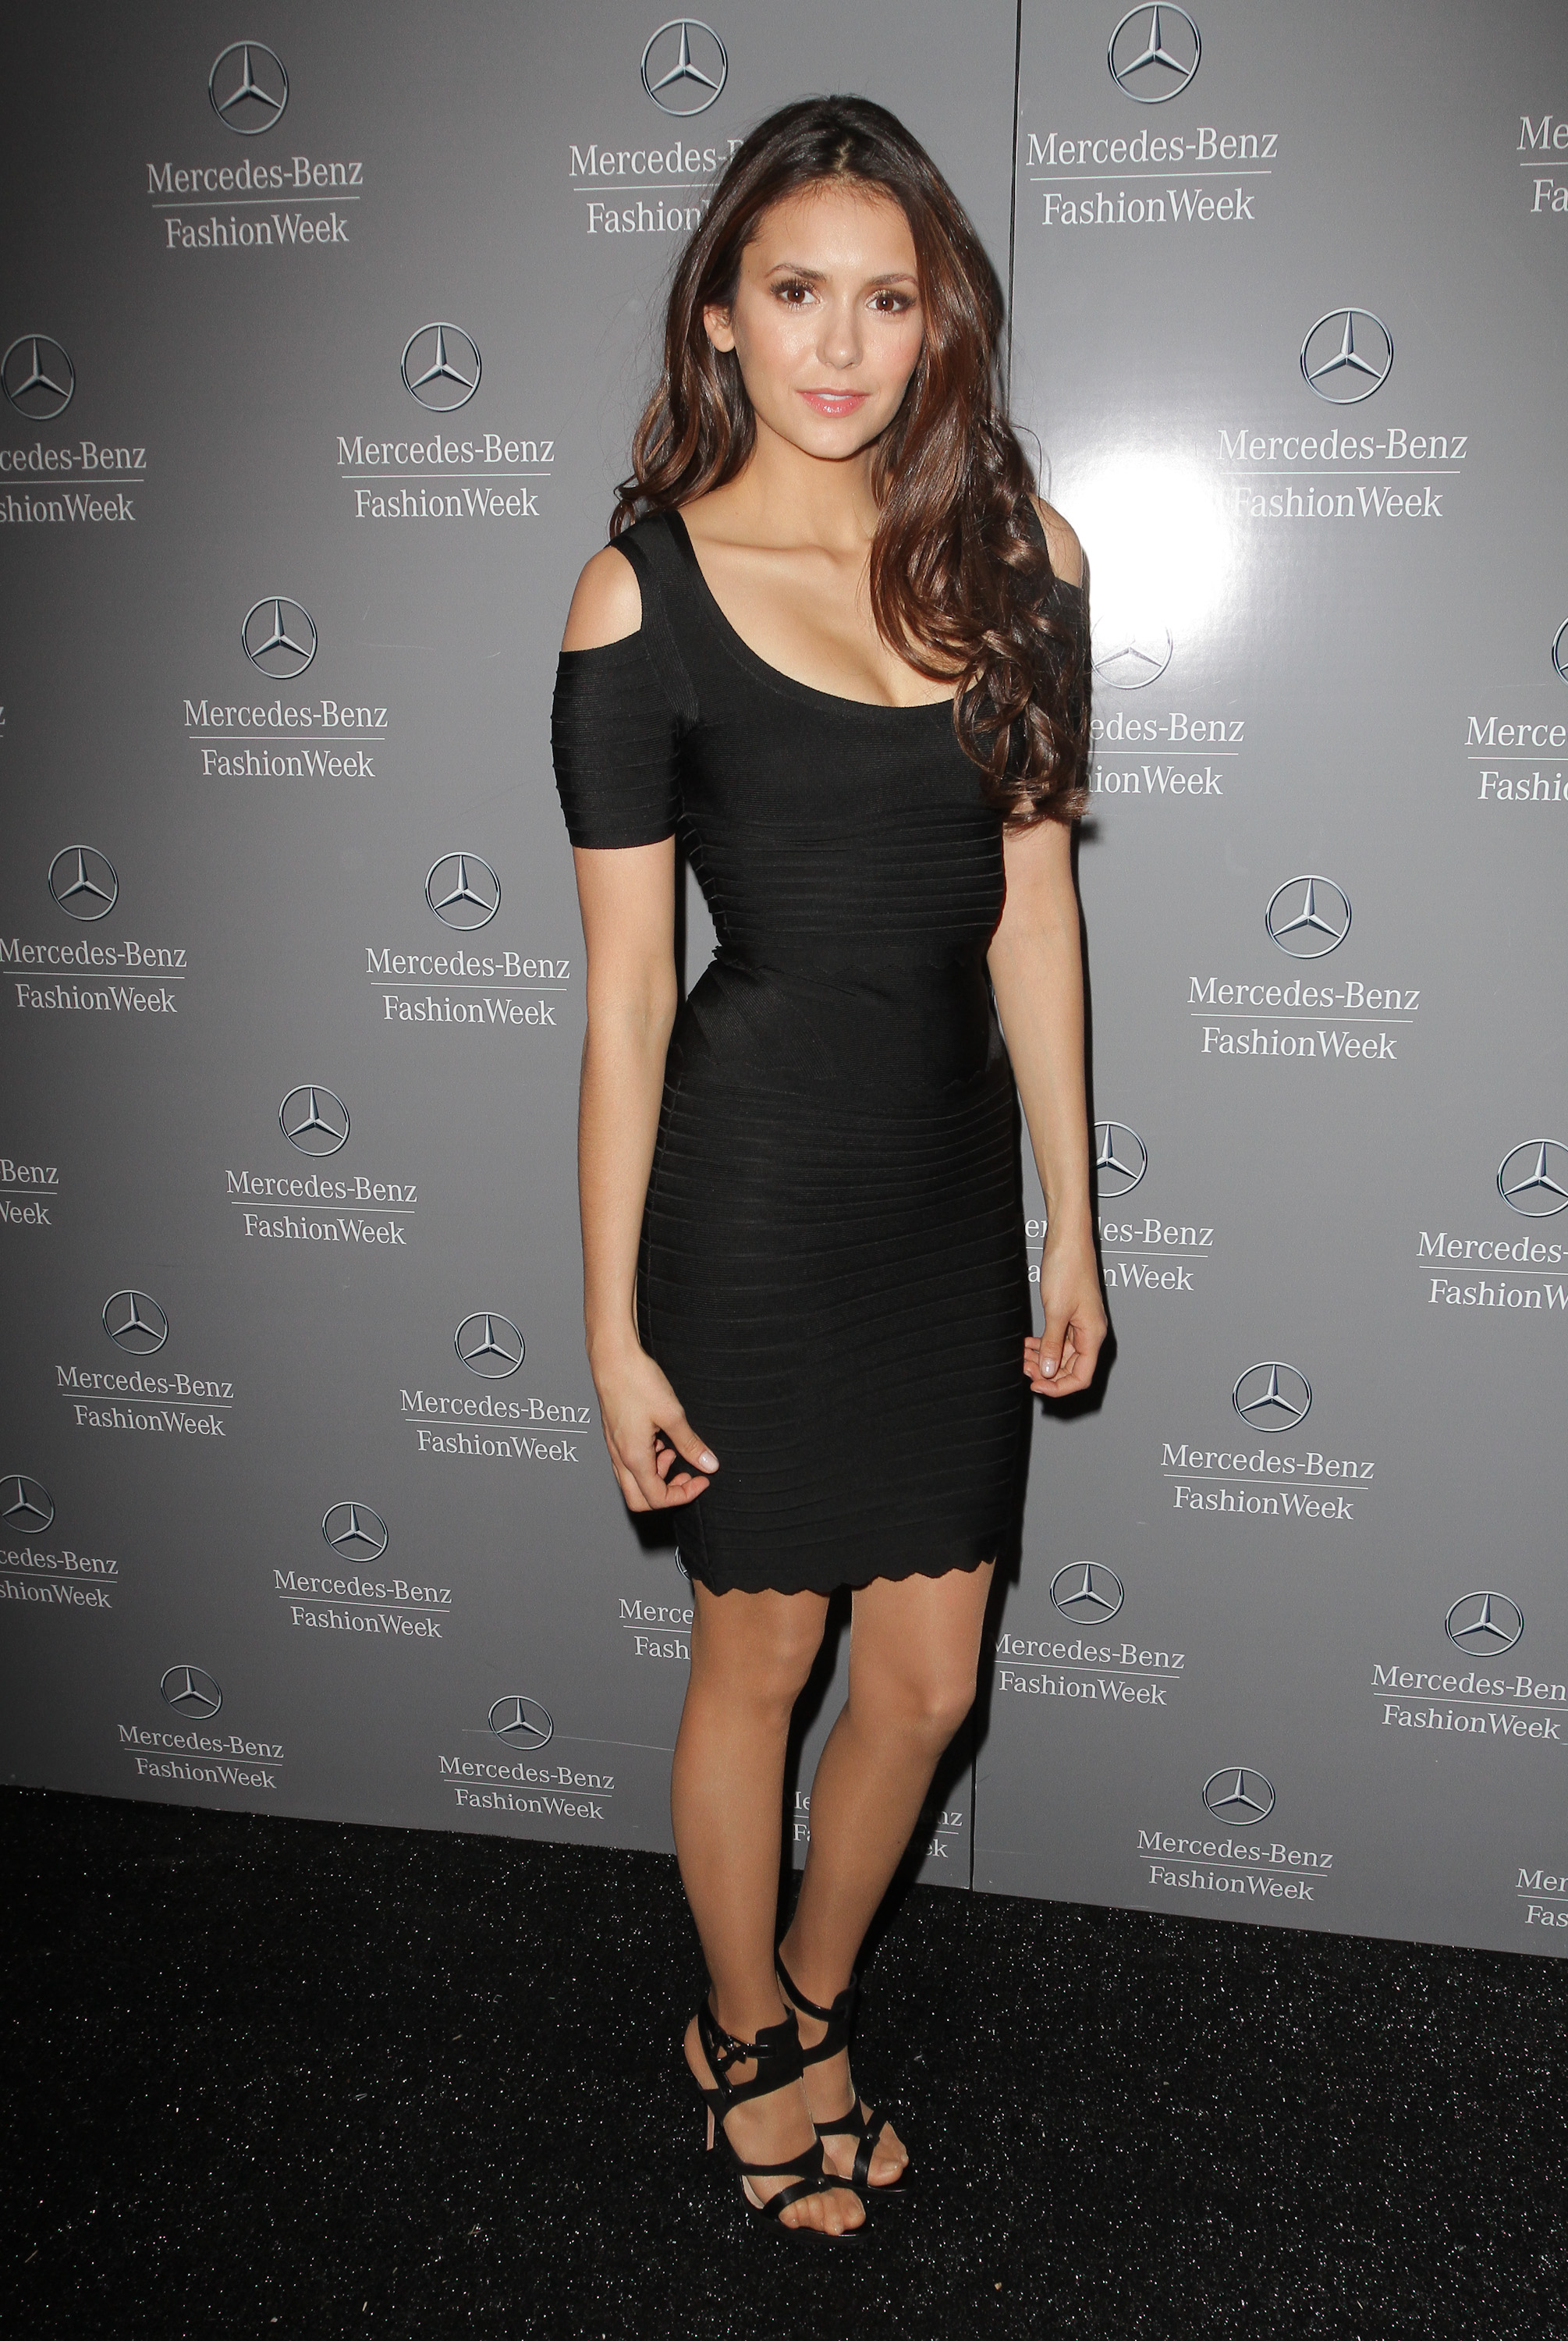 The starlet showed a bit of skin via shoulder cutouts in this LBD at Fall 2012 New York Fashion Week.